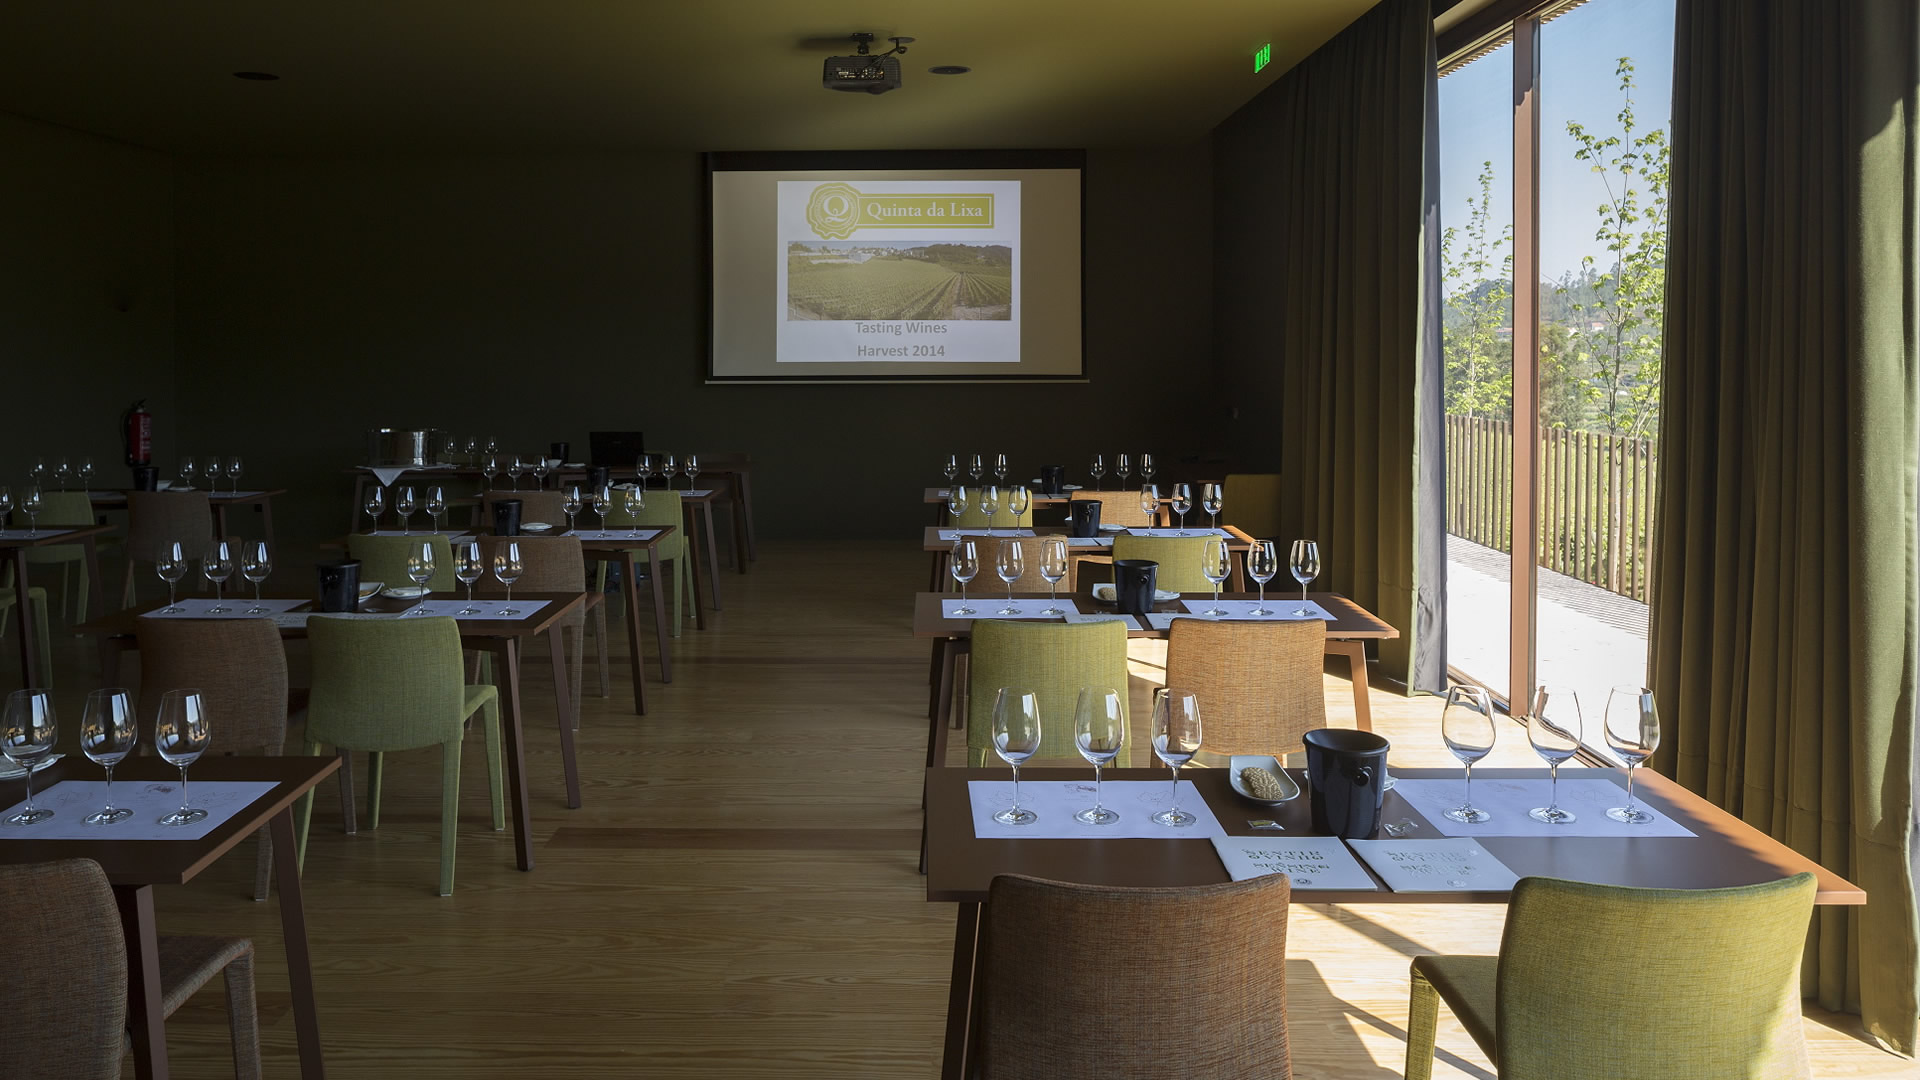 Monverde – Terras do Minho Wine & Food Tasting